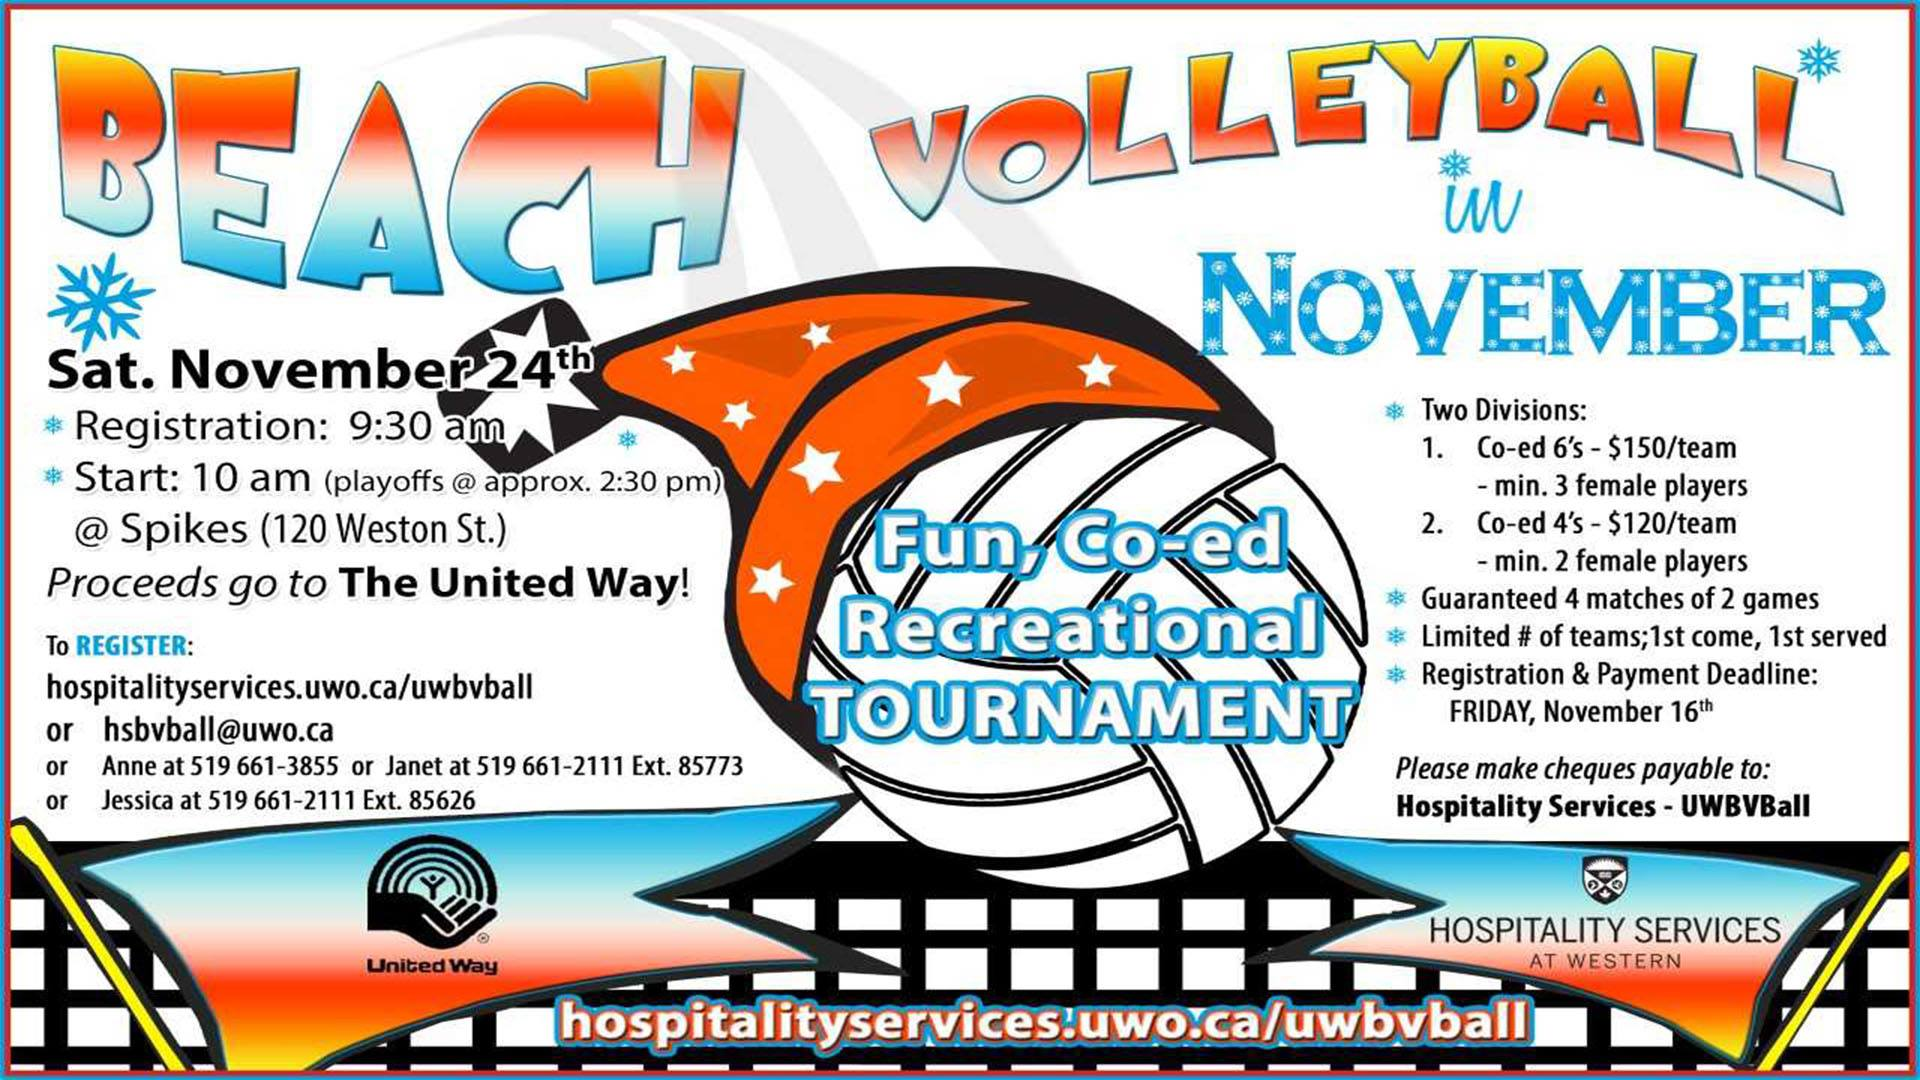 Beach Volleyball in November for United Way